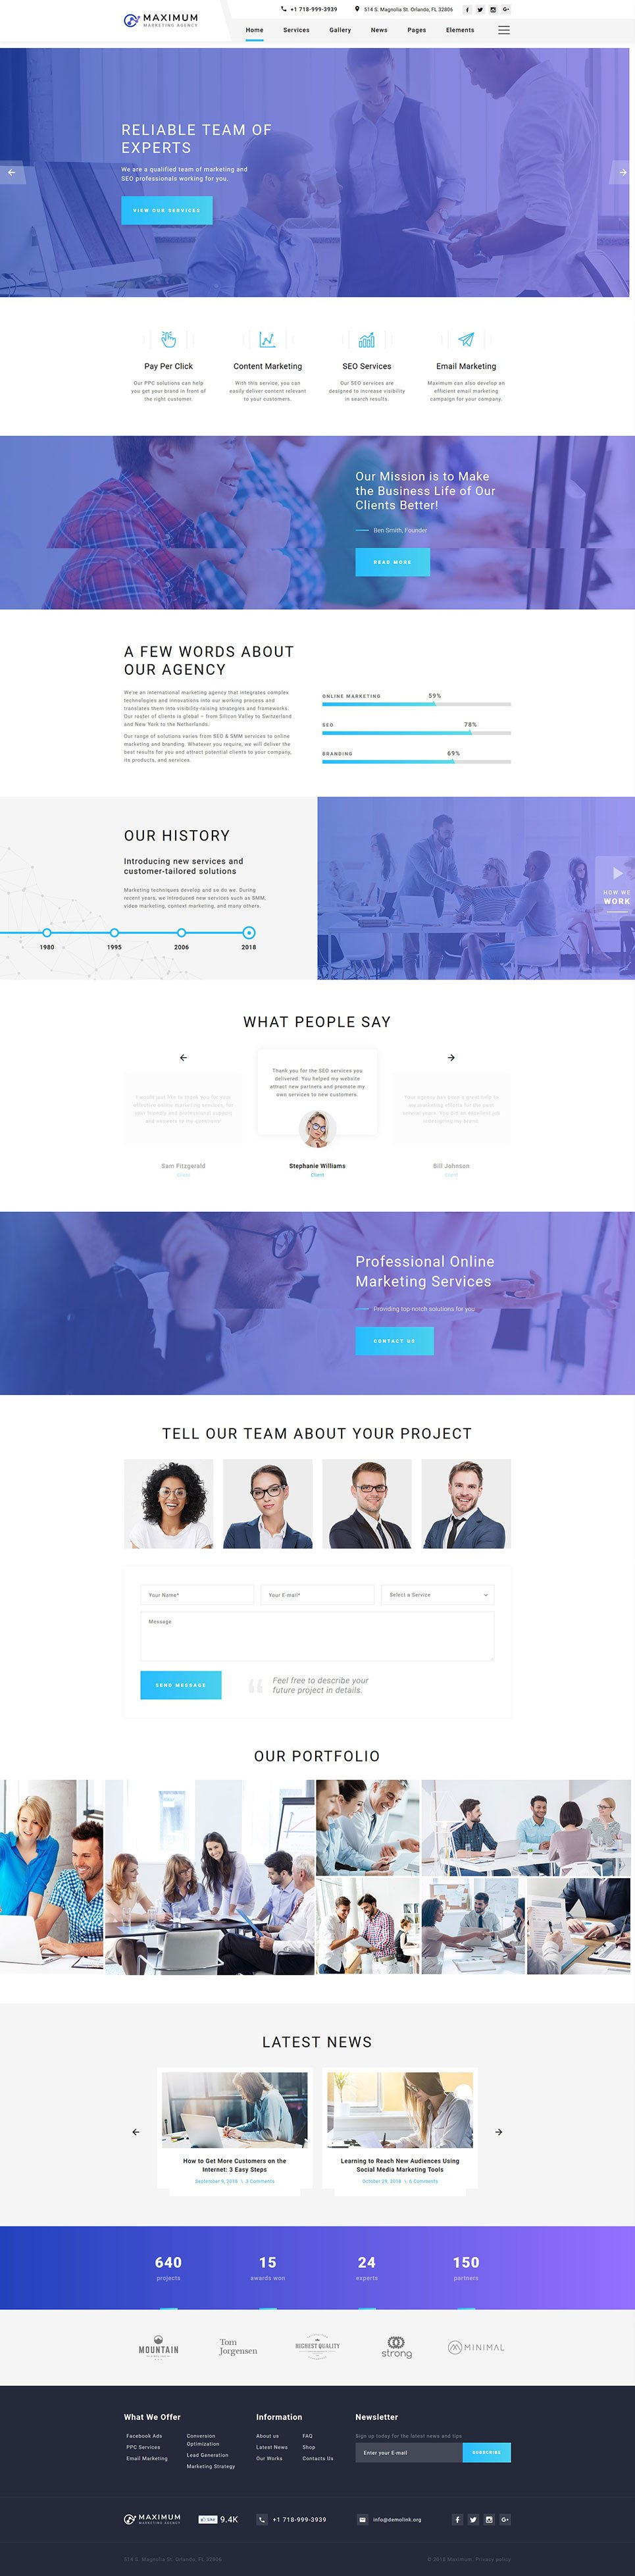 Digital Marketing Agency template illustration image